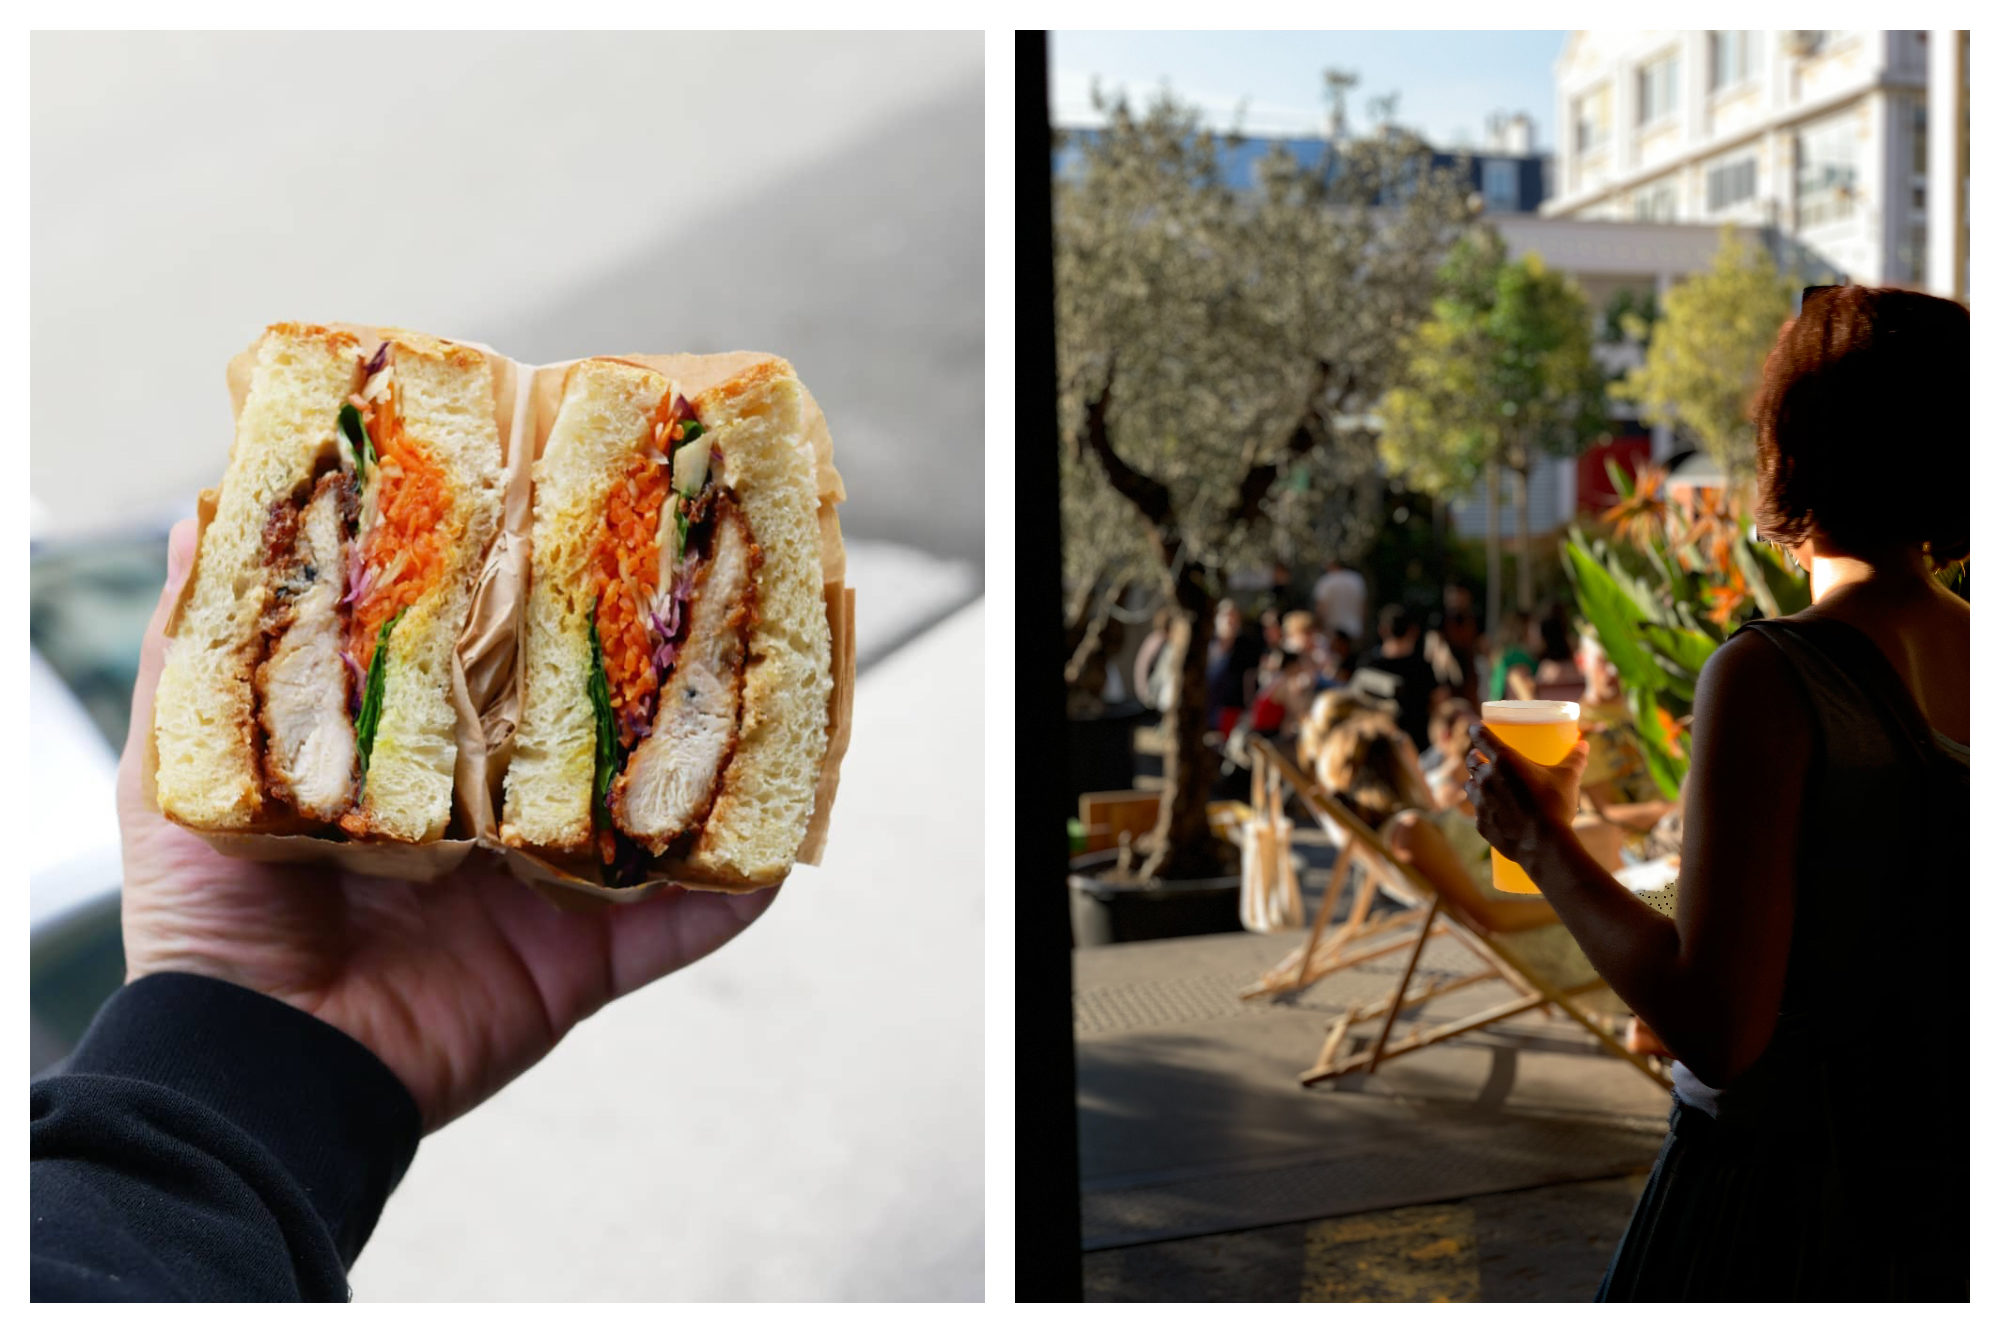 A hand holding a generously filled sandwich at La Felicita in Paris (left). People sunbathing in deck chairs, a woman holding a beer at Ground Control in Paris (right).